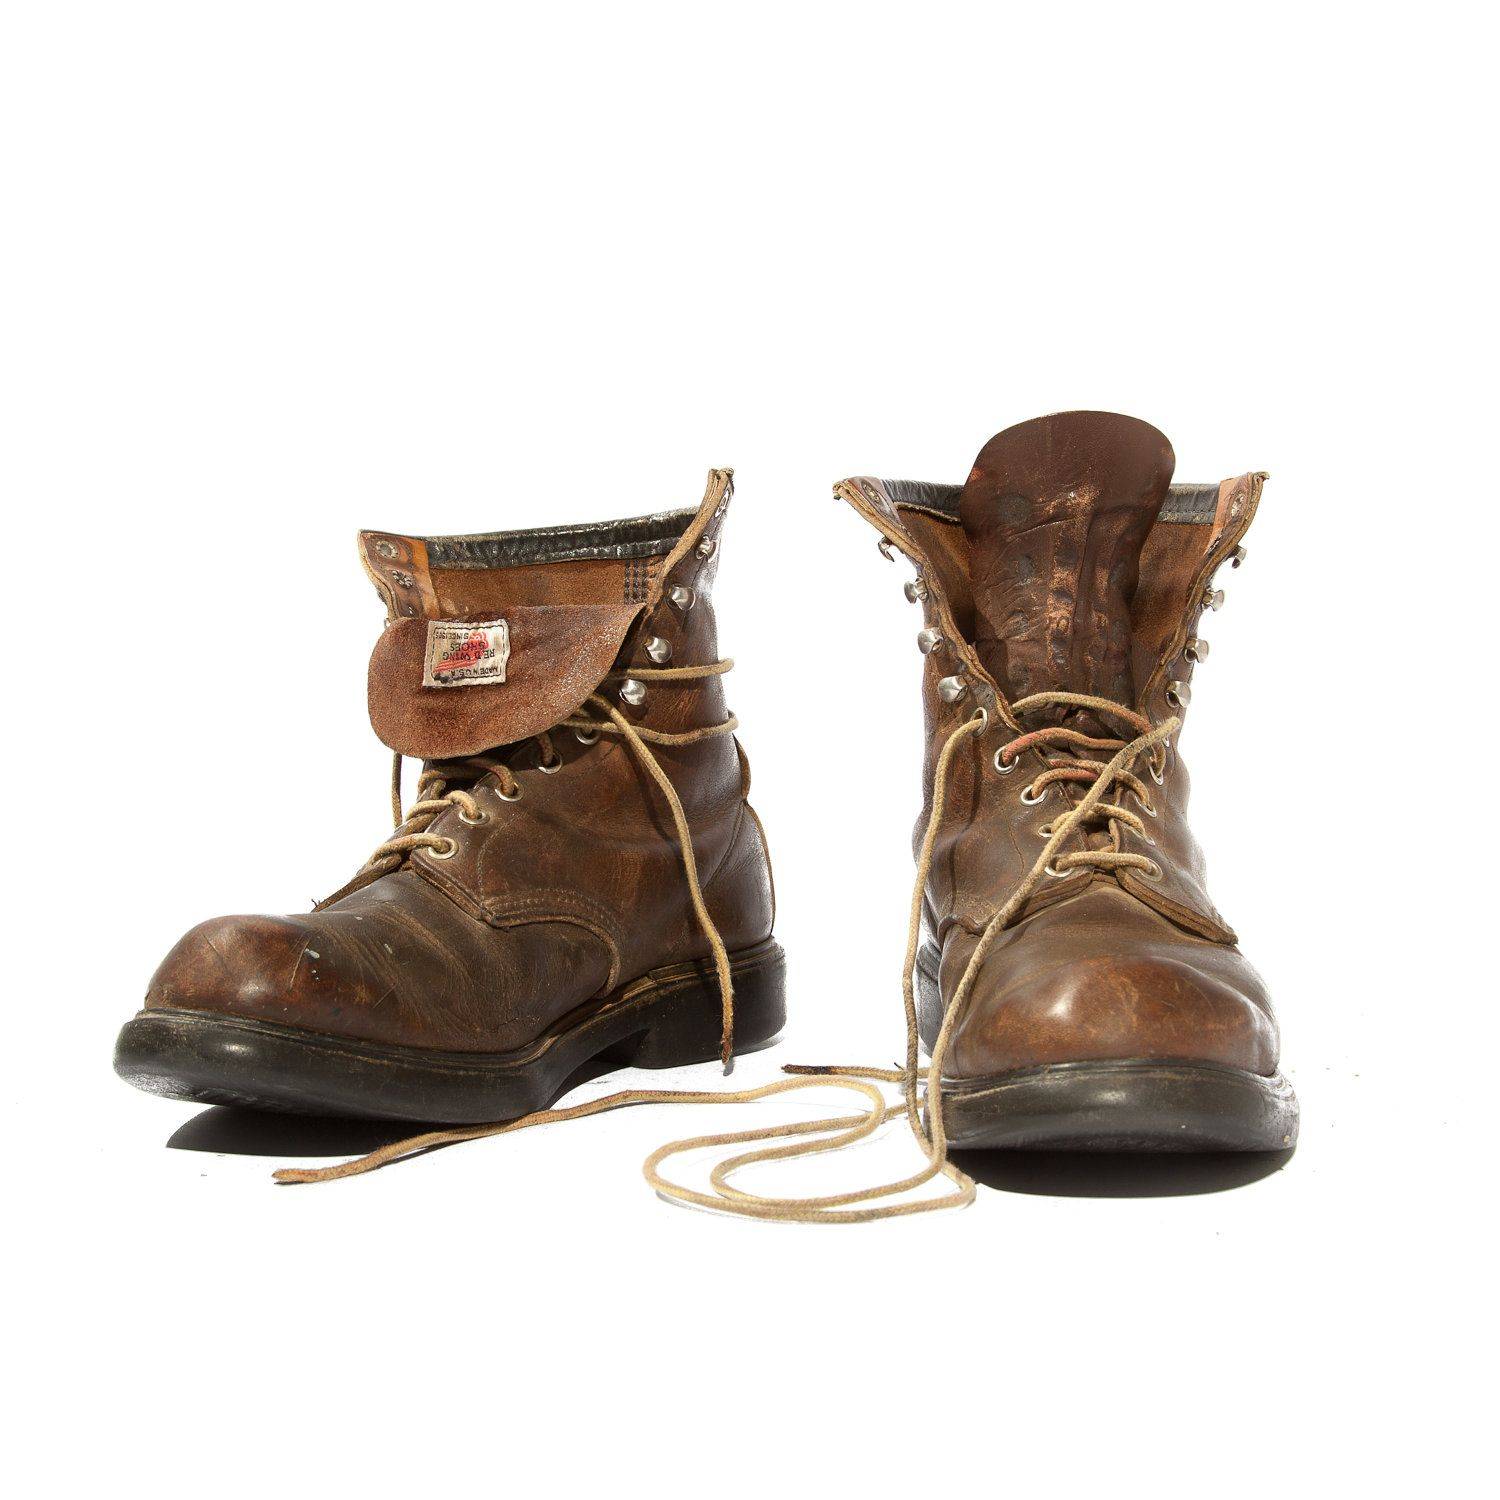 Vintage Red Wing Boots Steel Toe Men's Lace Up Ankle Boots ...